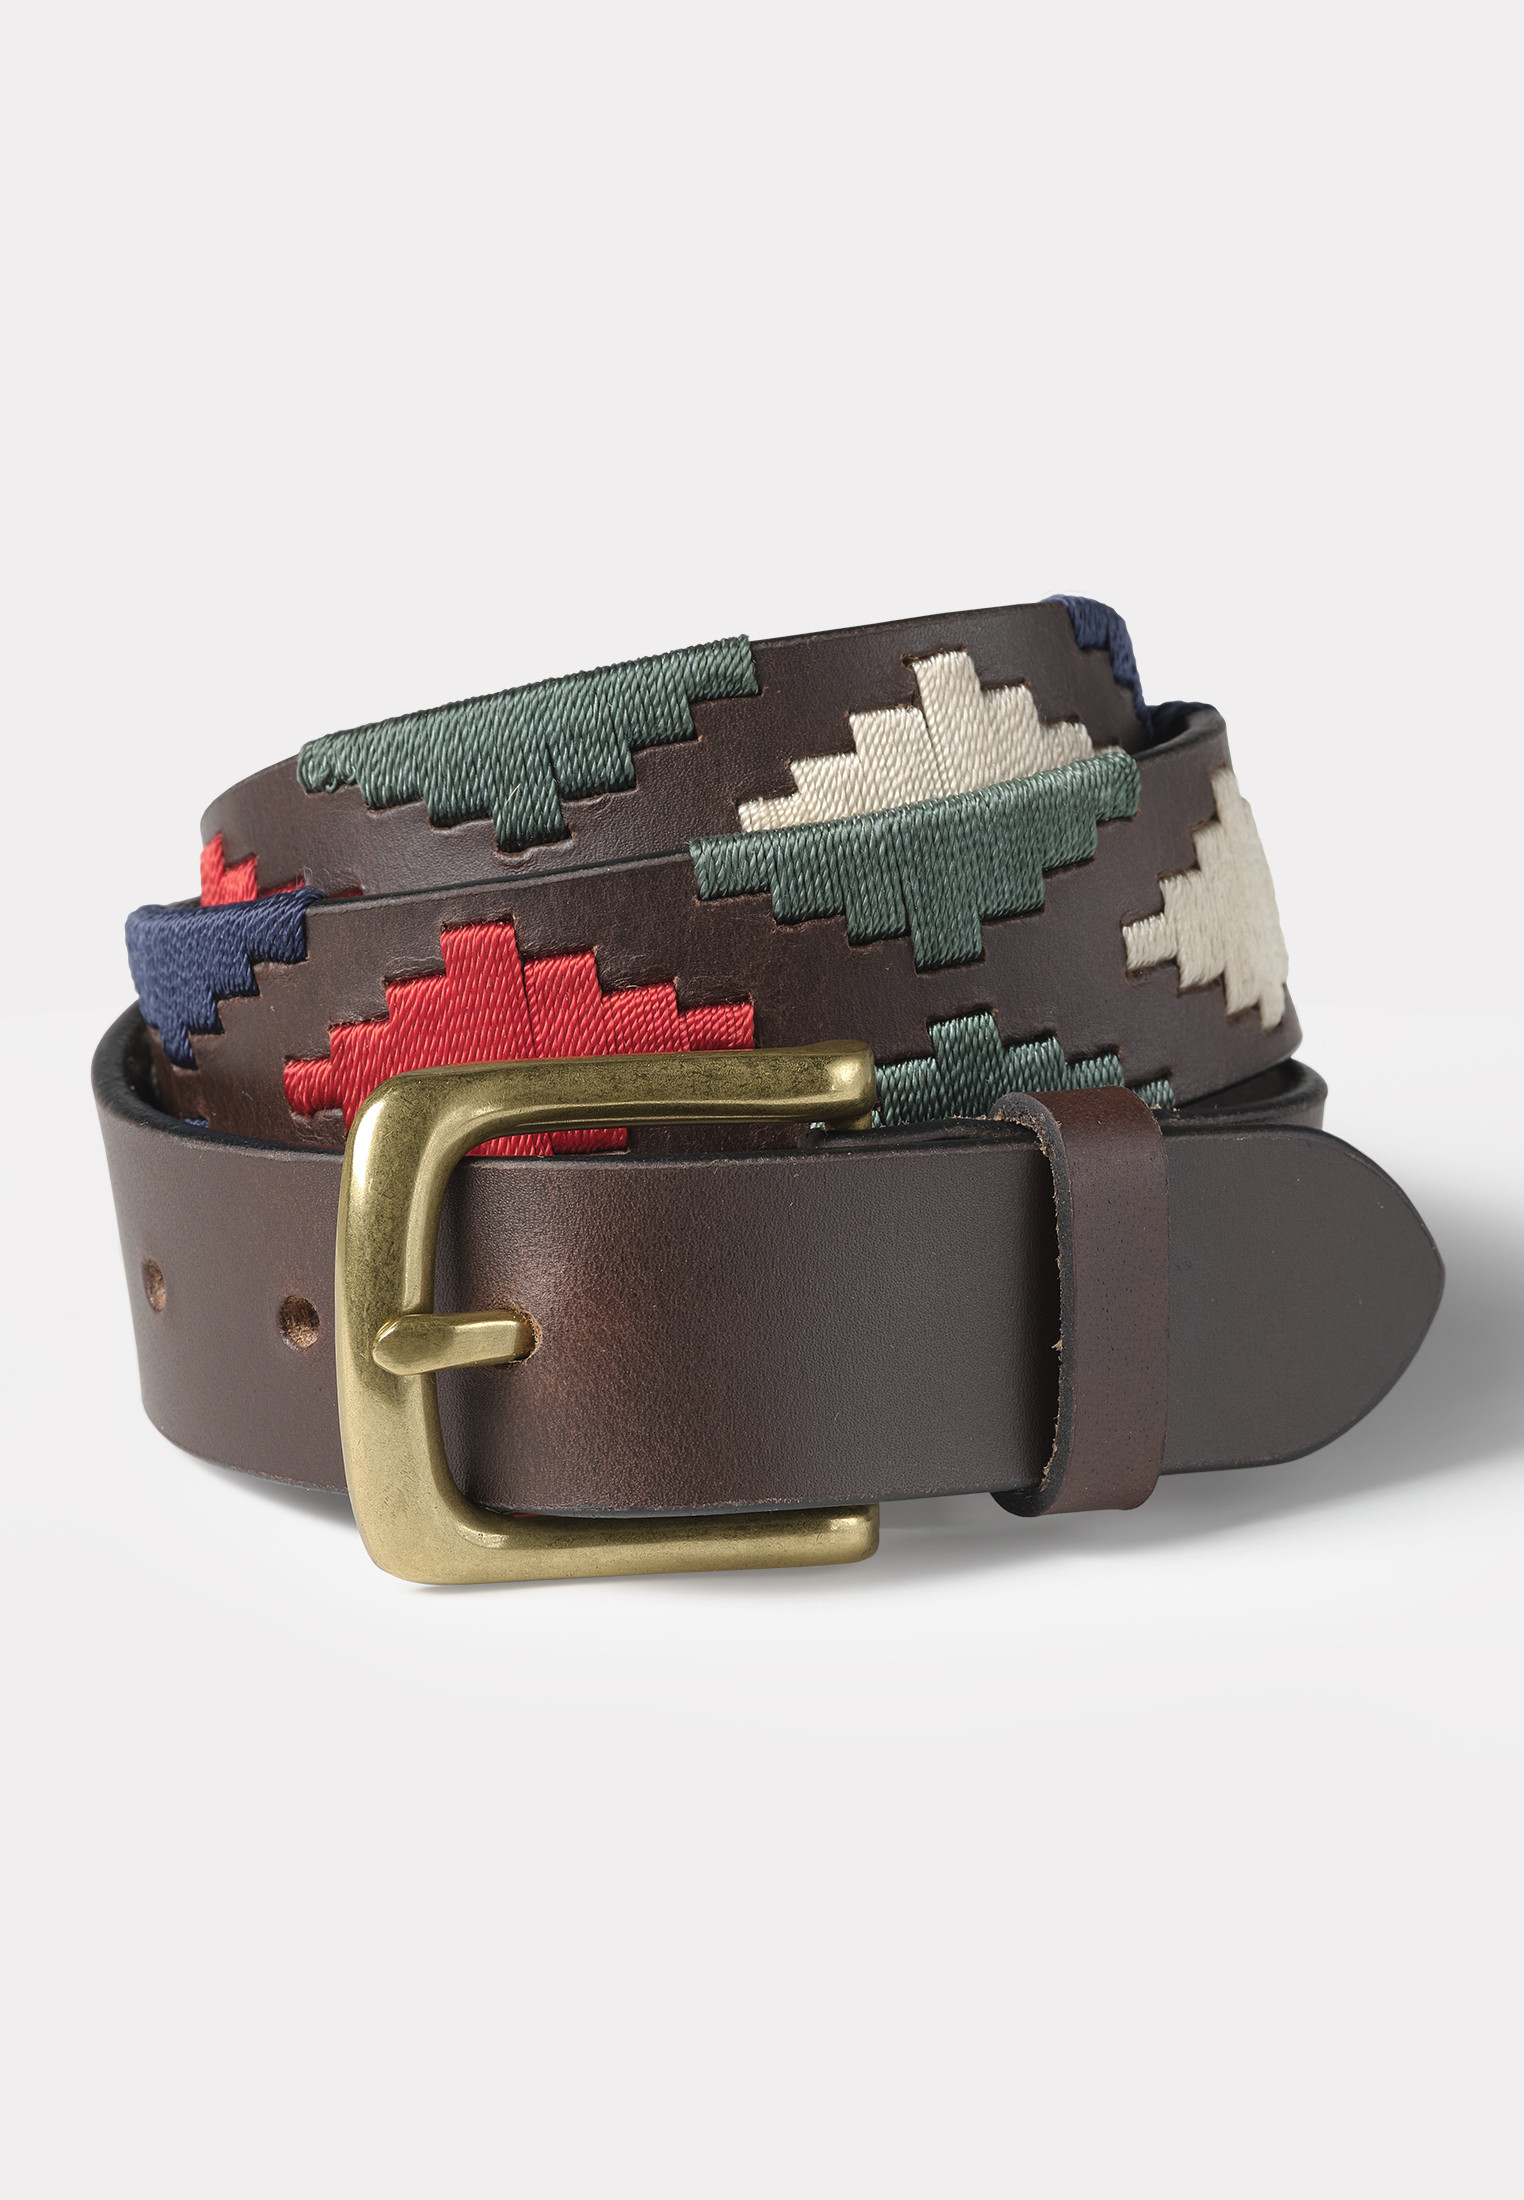 Cambridge Brown Leatther with Woven Design Belt